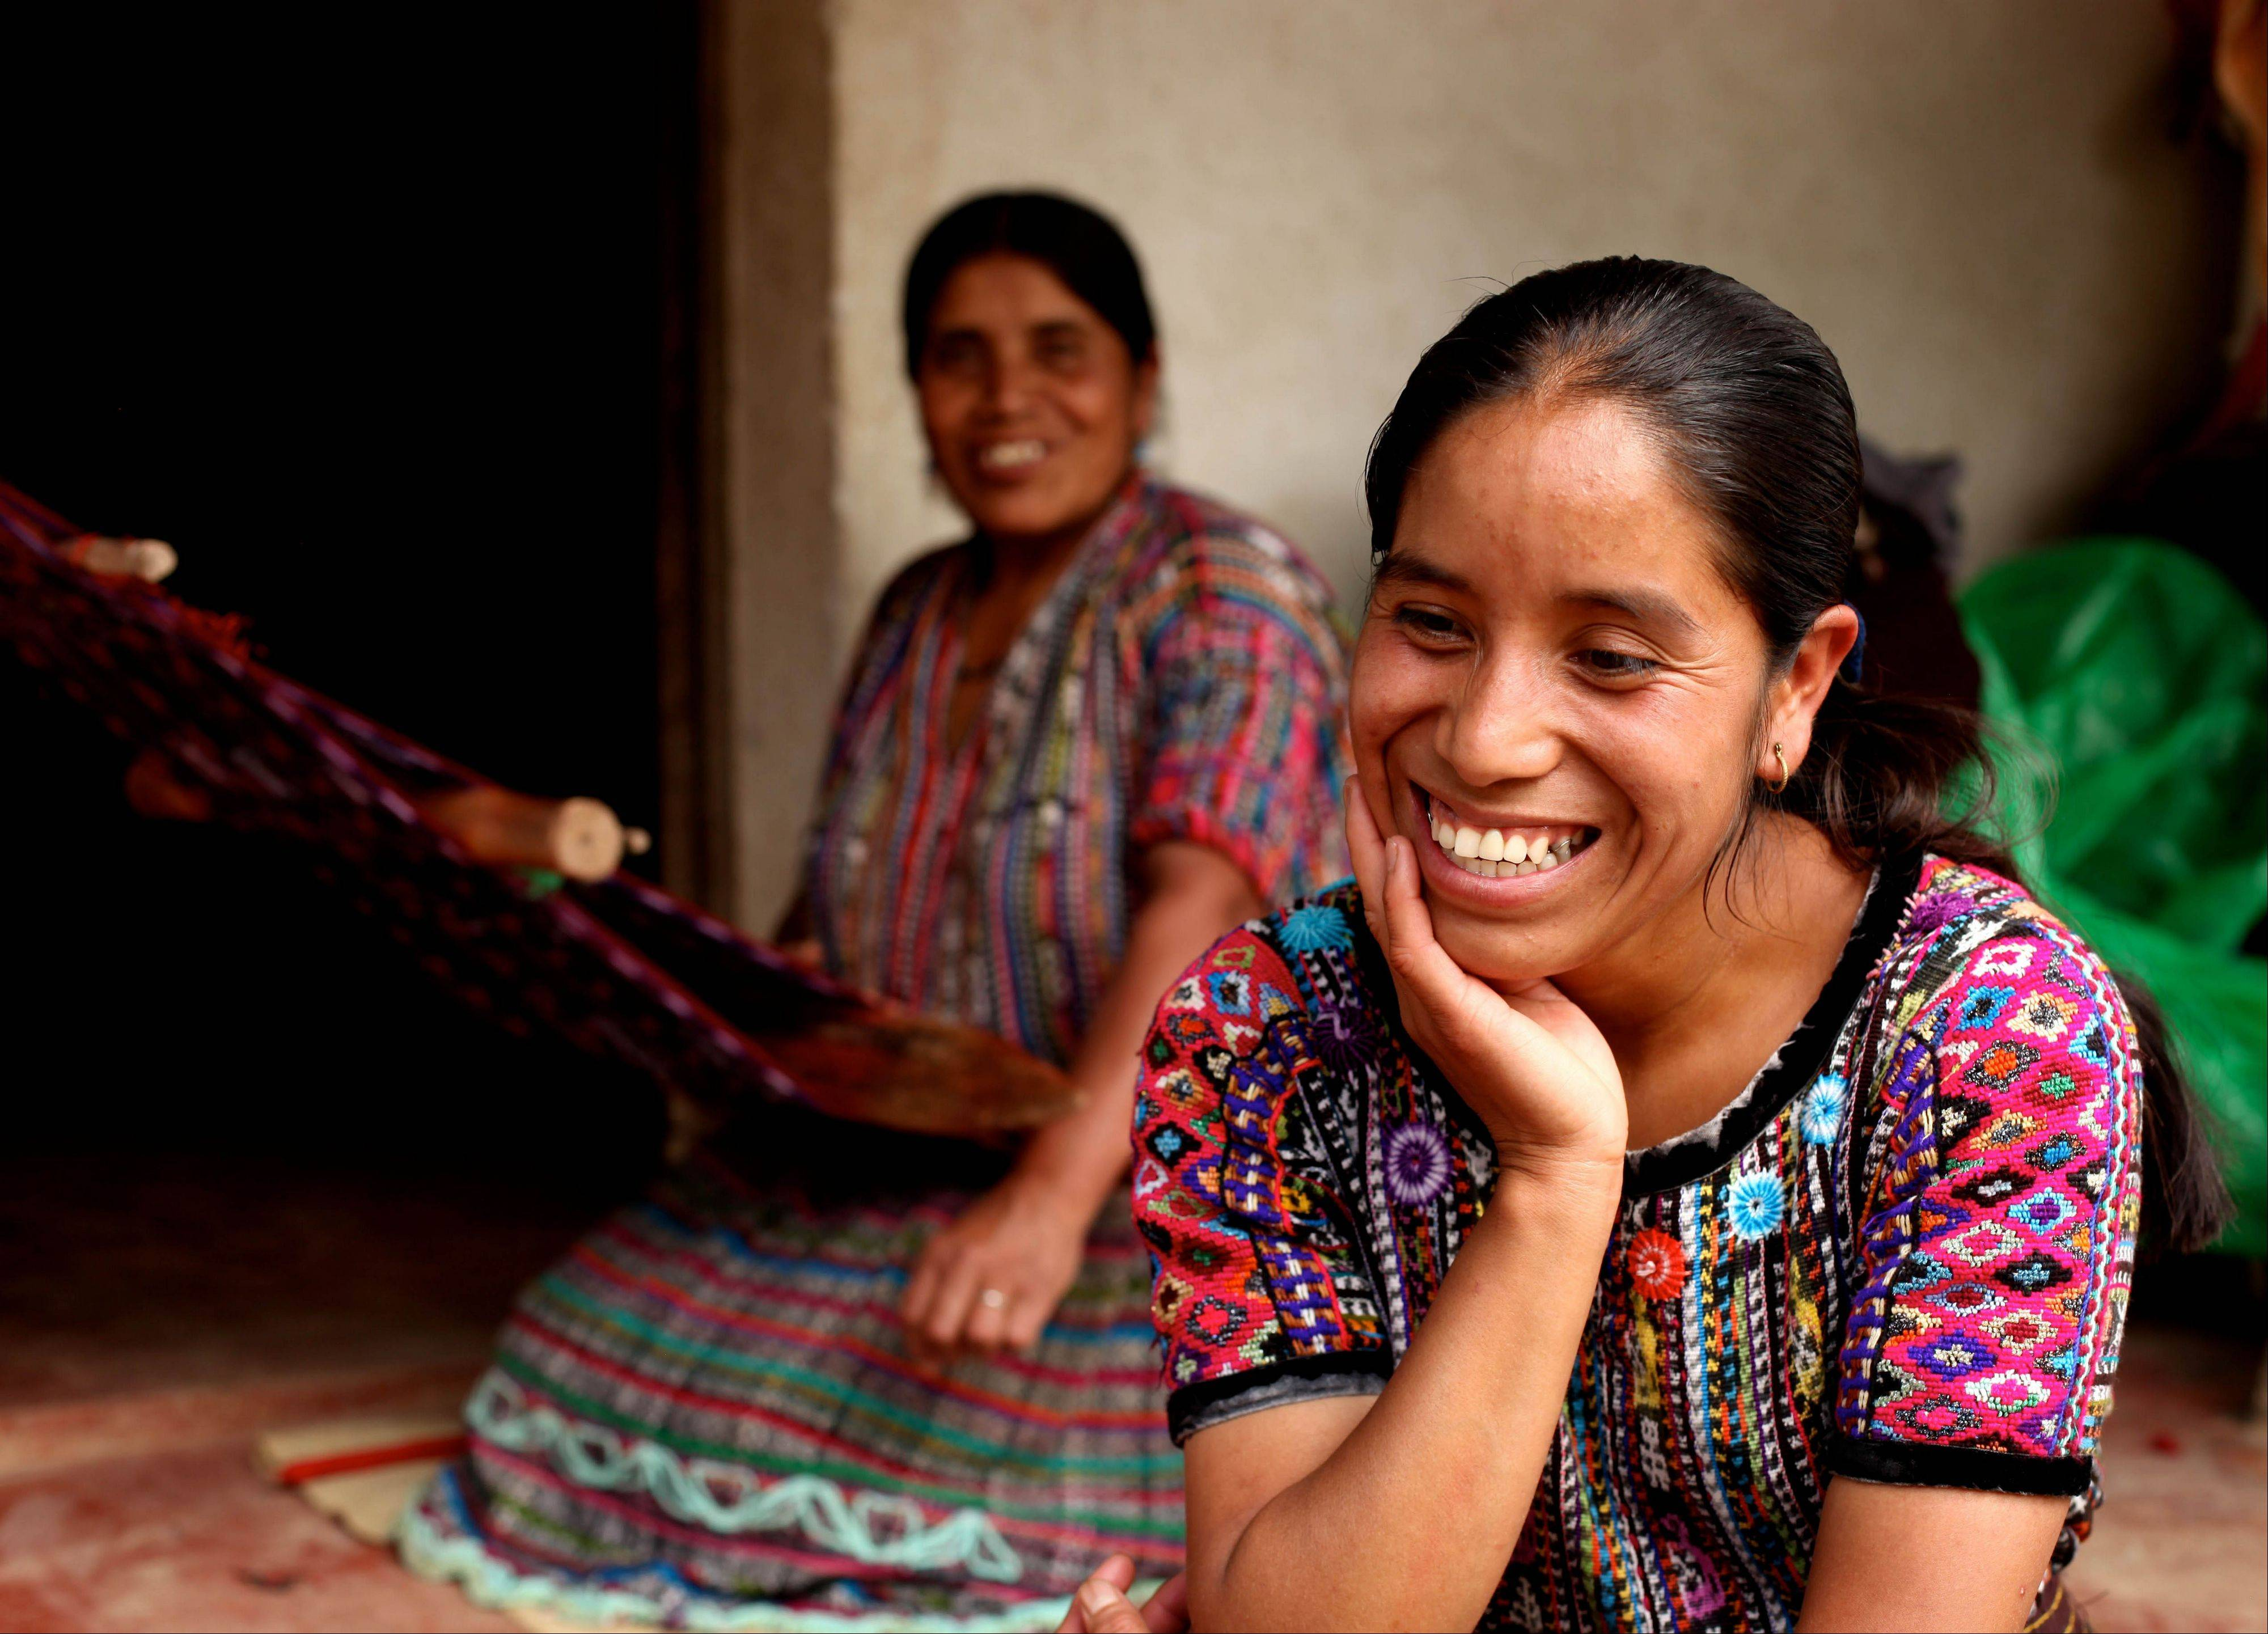 Rosa Coj Bocel, right, received a microloan to start a weaving business, with her mother in Pena Blanca, Guatemala.